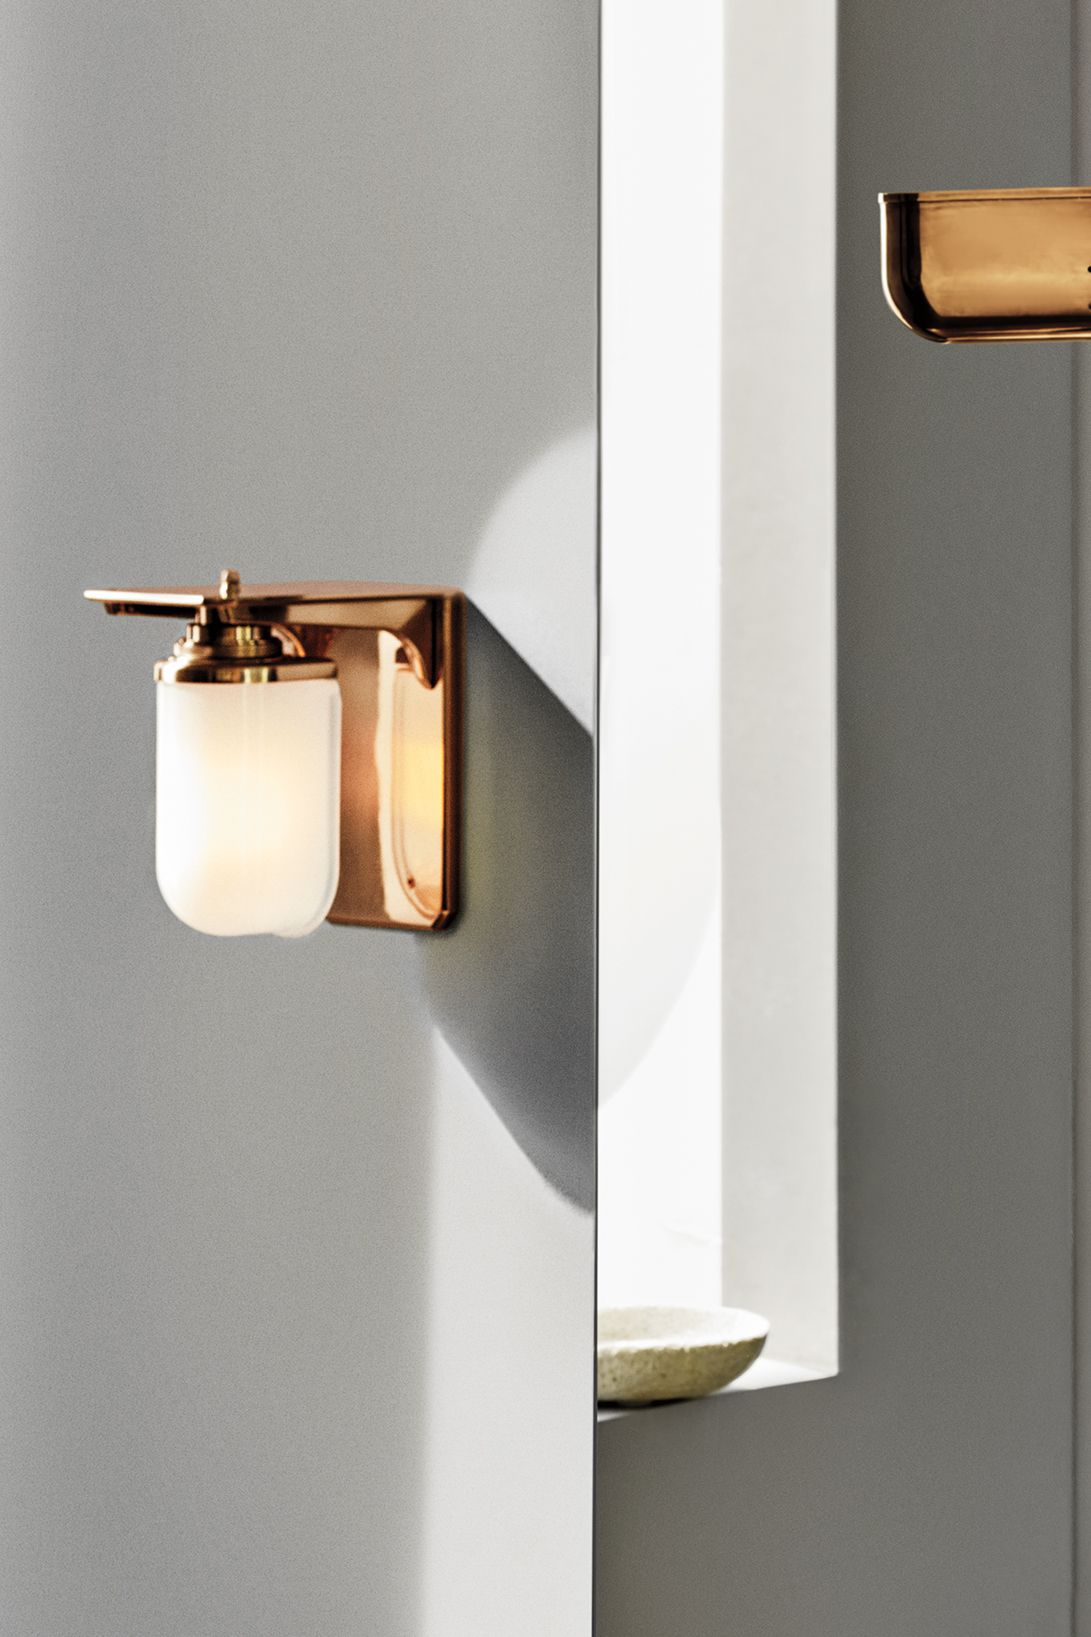 R W Atlas Wall Mounted Single Arm Sconce With Glass Shade In 2020 Glass Shades Glass Pendant Light Wall Mounted Light